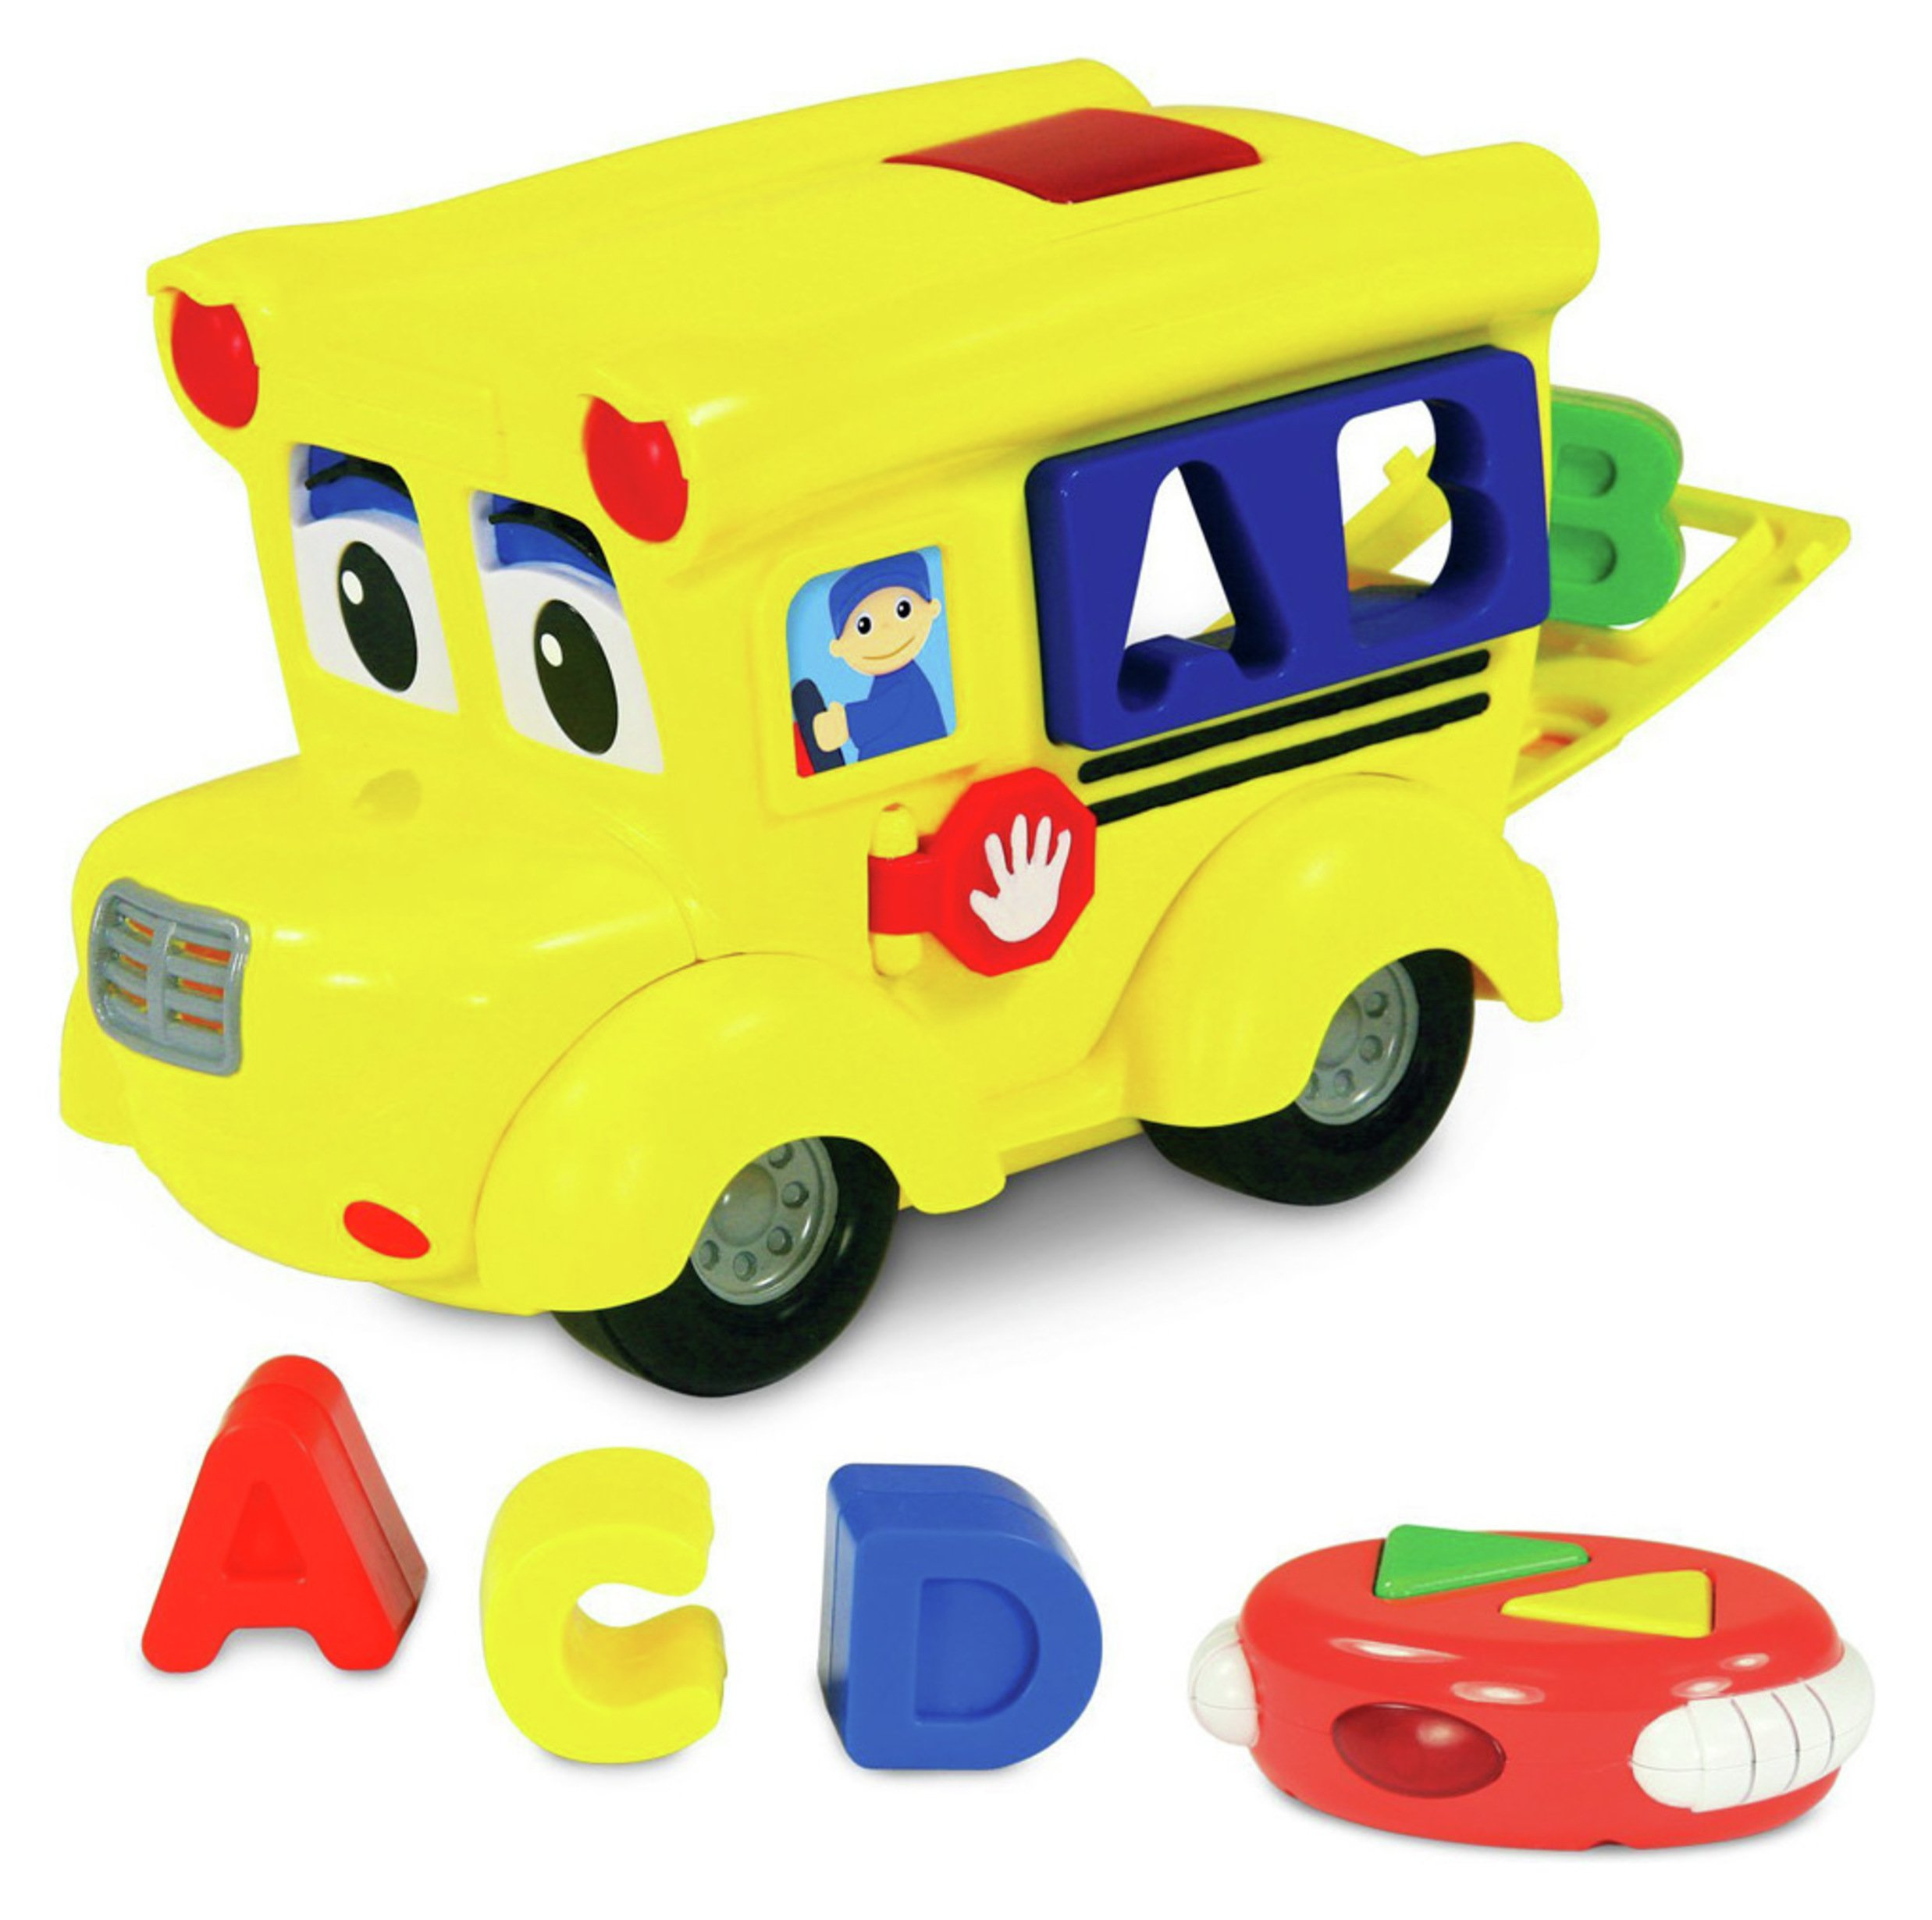 Remote Control Shape Sort Letterland Bus Playset.